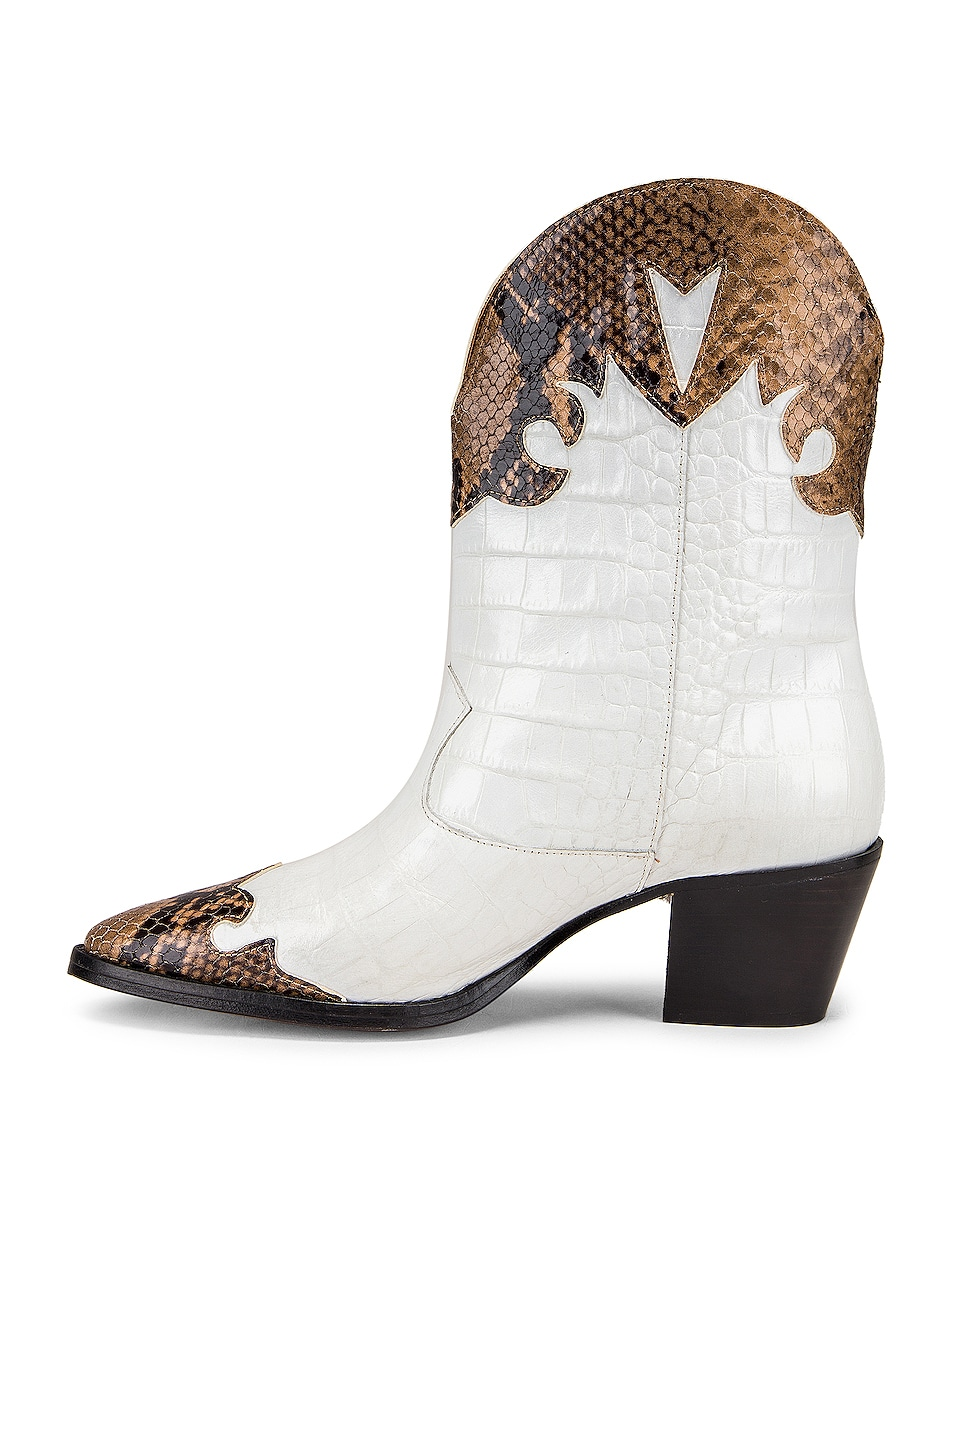 Image 5 of Paris Texas Python Moc Coco Texano Boot in Camel & White